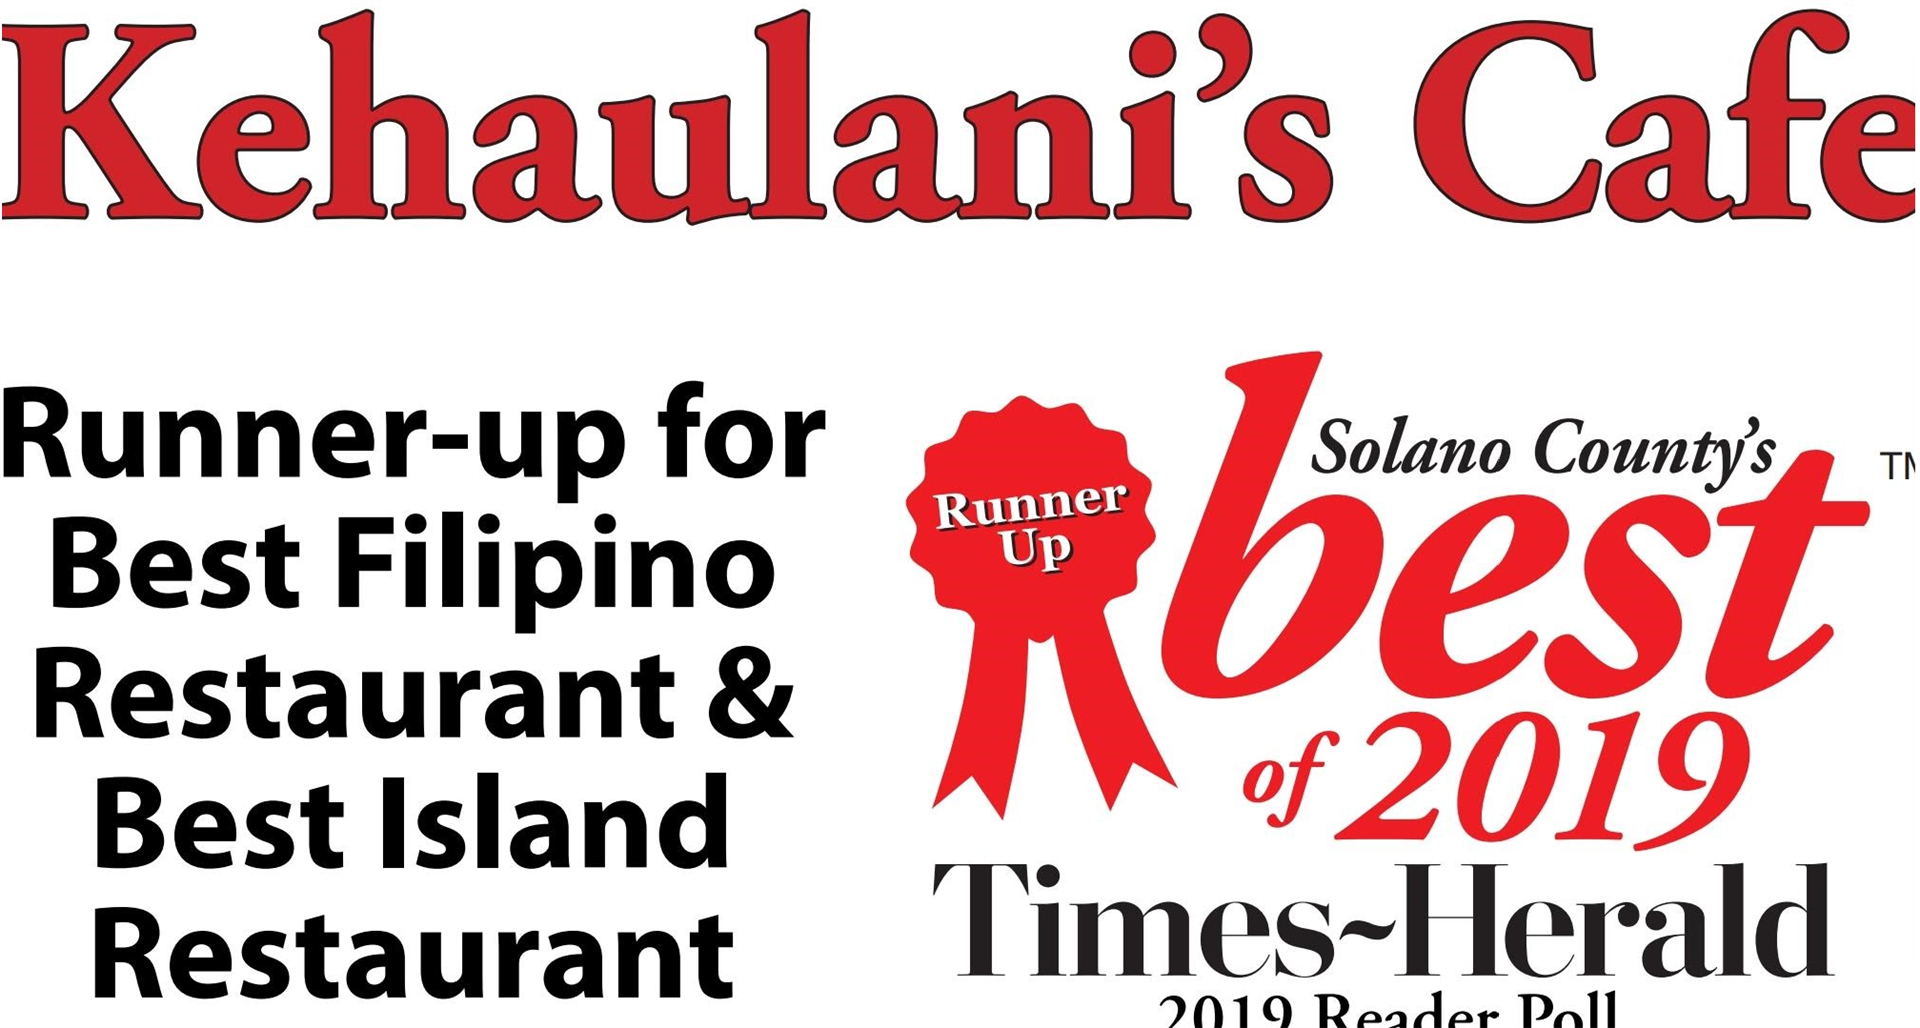 Kehualani's Cafe Runner-up for Best Filipino Restaurant & Best Island Restaurant - Solano County's best of 2019 Times Herald 2019 Reader's Poll